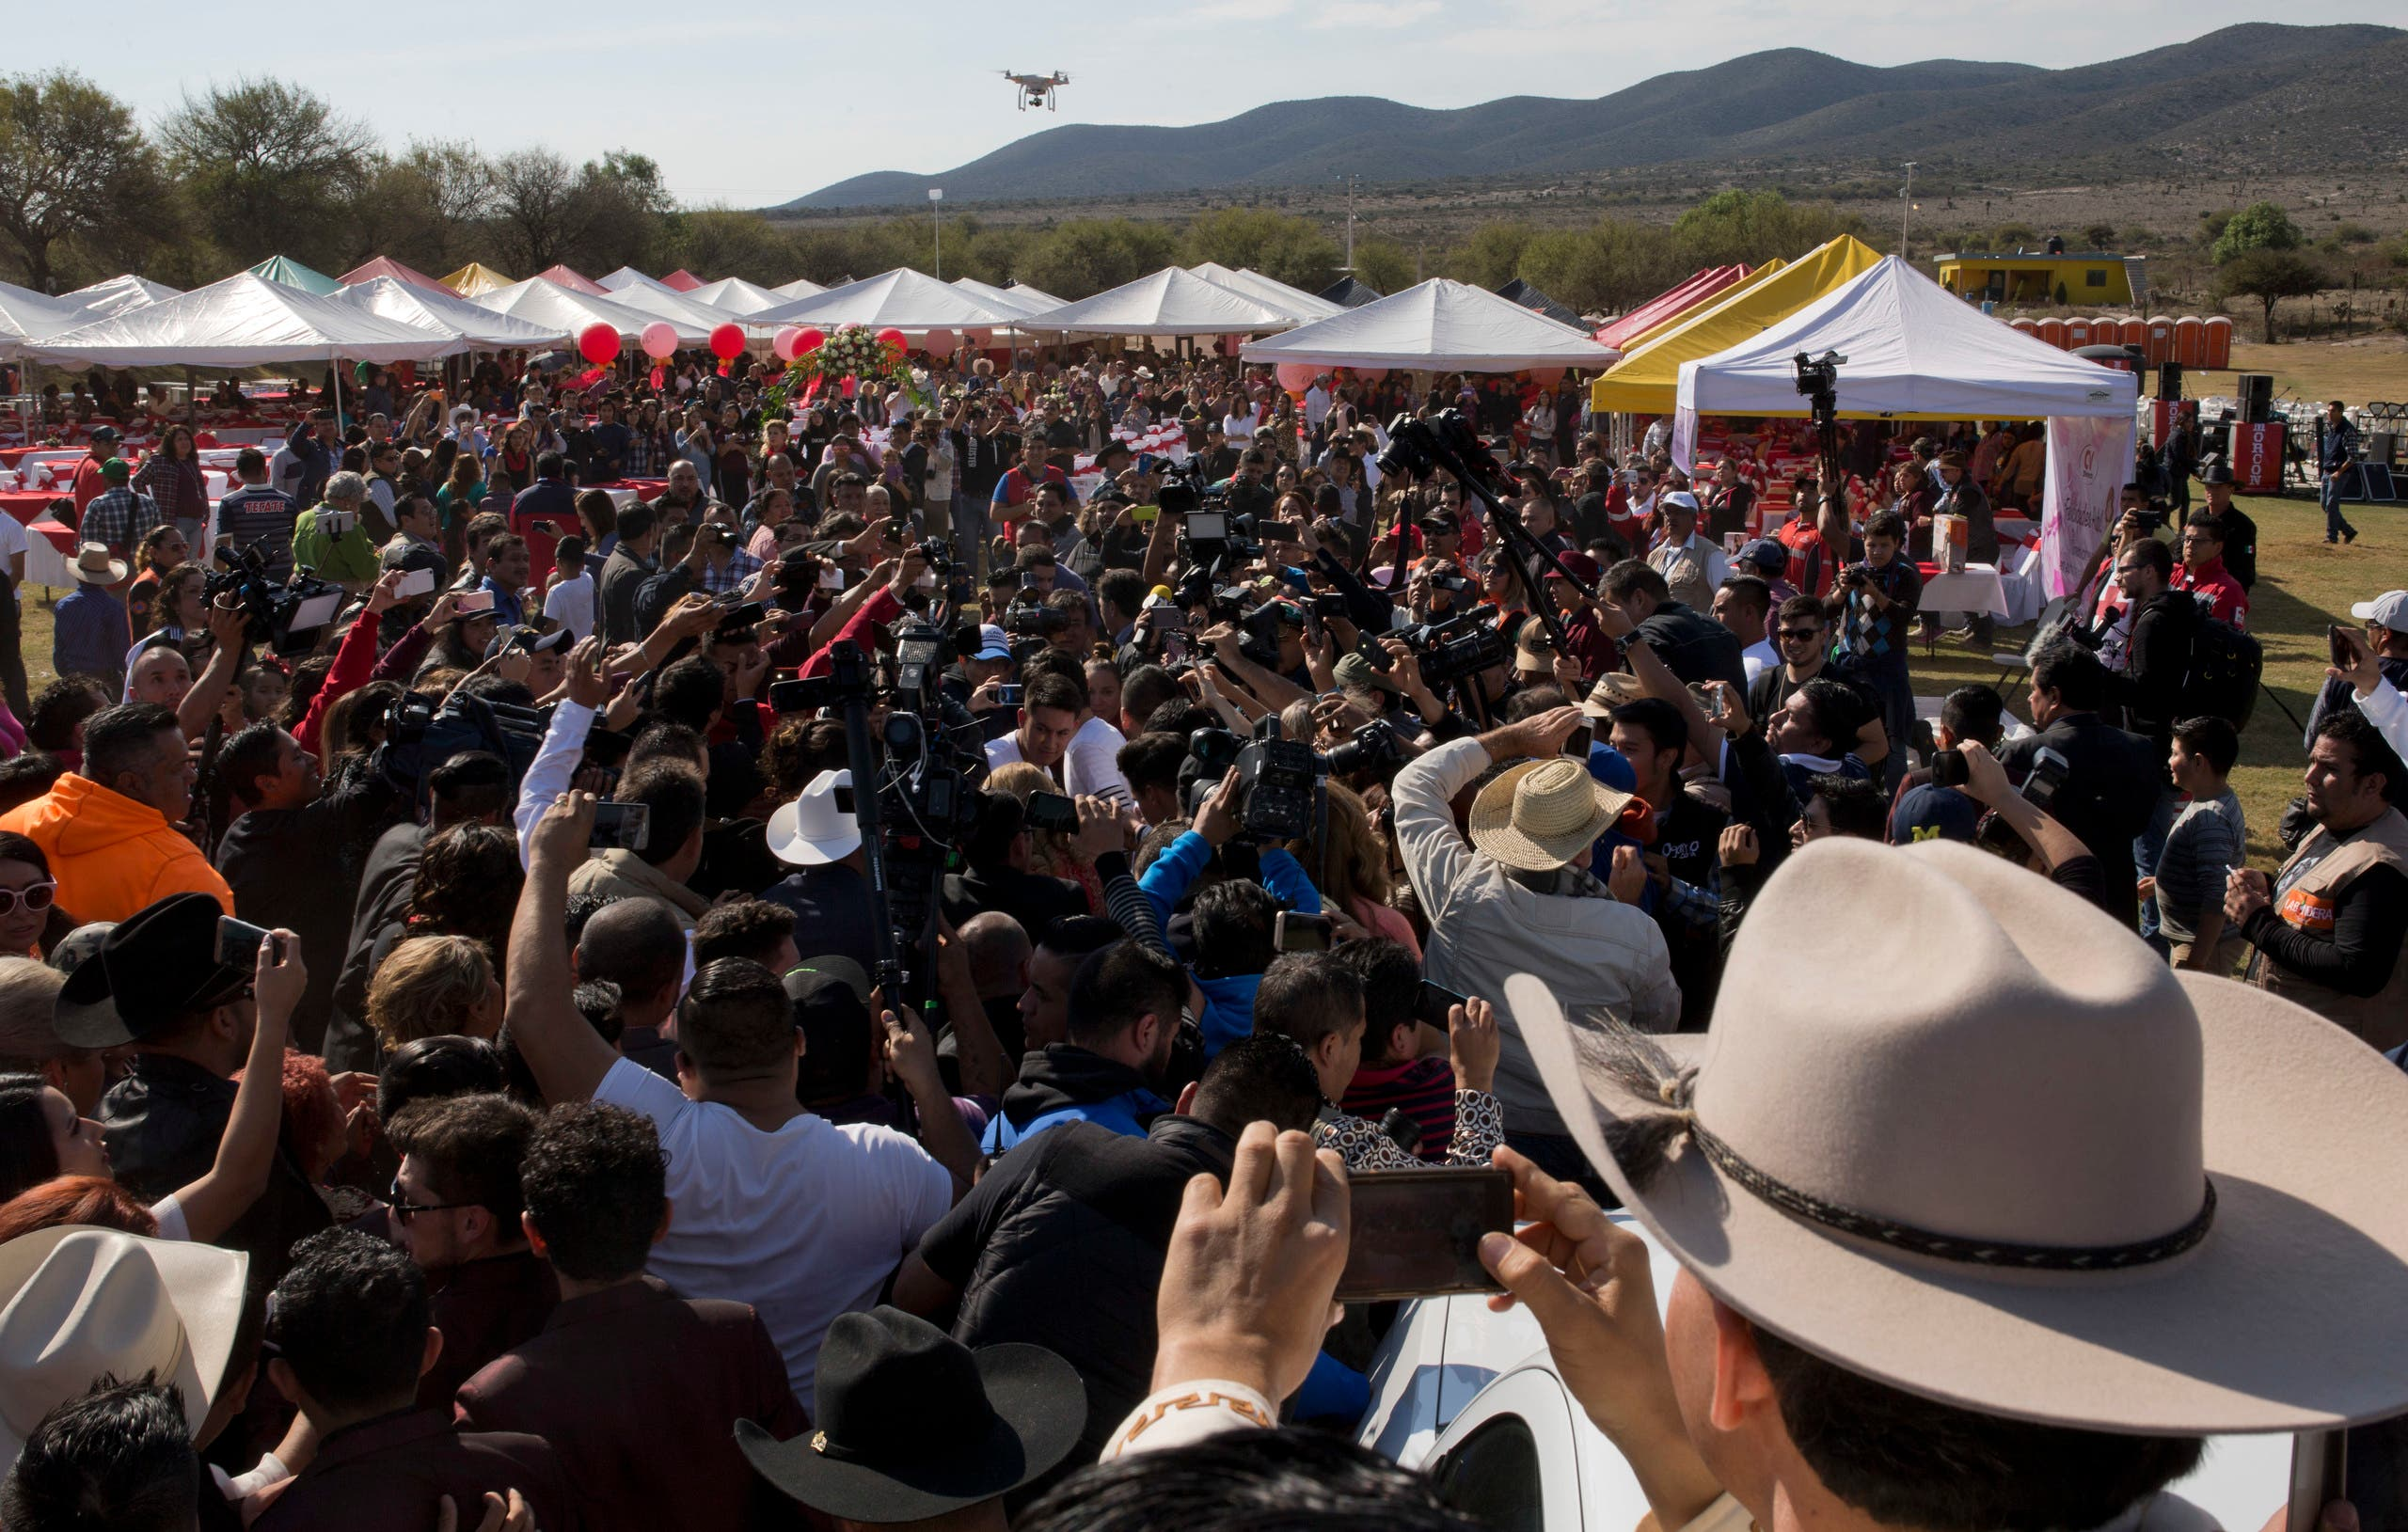 Rubi Ibarra, not seen, arrives at the site of a Mass that is part of her down-home 15th birthday party, surrounded by a horde of journalists and a drone flying overhead, in the village of La Joya, San Luis Potosi State, Mexico, Monday, Dec. 26, 2016. AP